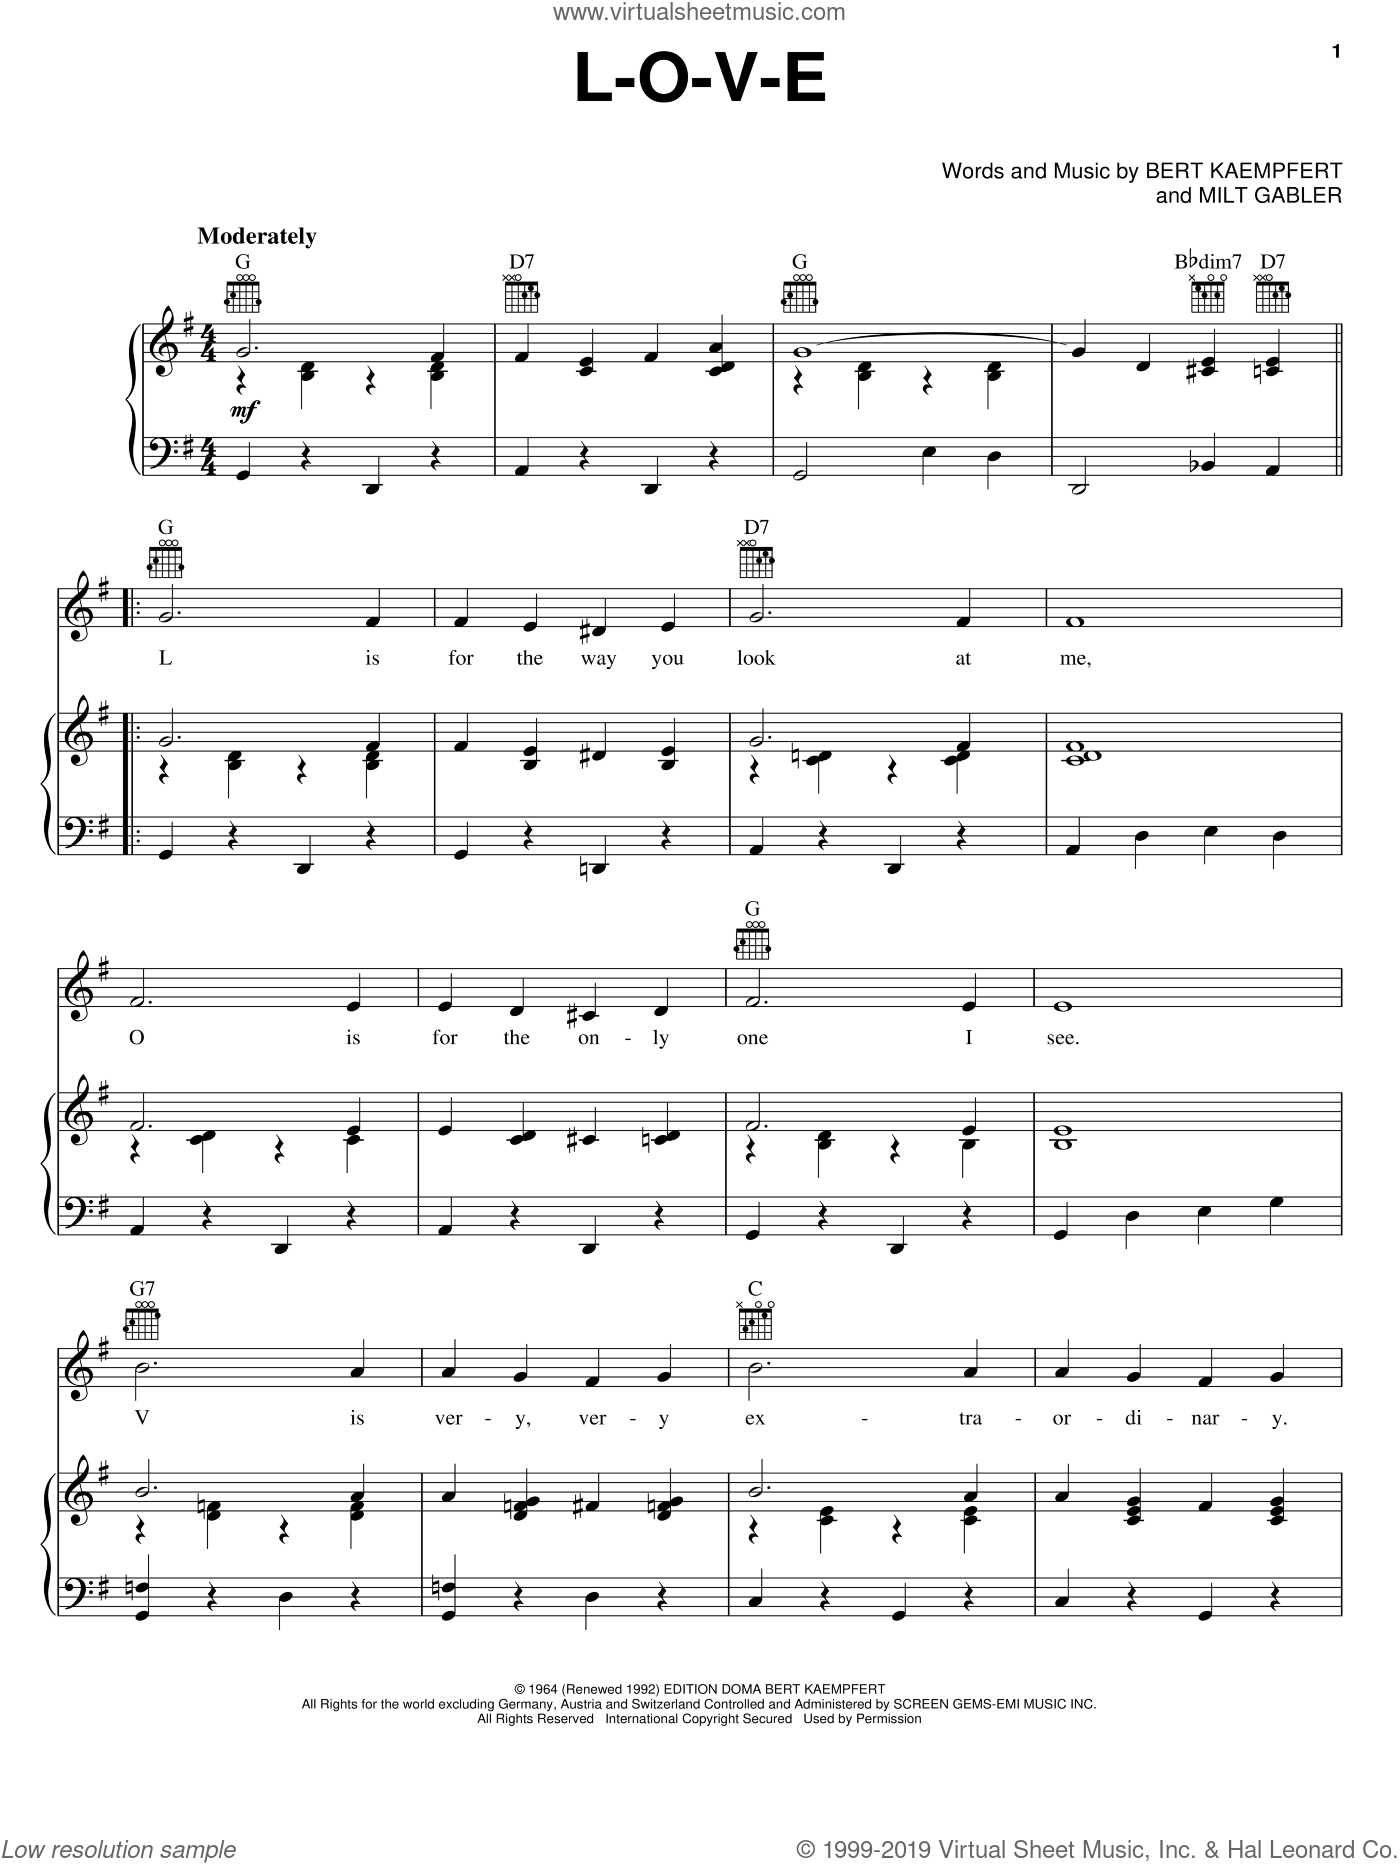 L-O-V-E sheet music for voice, piano or guitar by Nat King Cole, Natalie Cole, Peggy Lee, Wayne Newton, Bert Kaempfert and Milt Gabler, wedding score, intermediate skill level